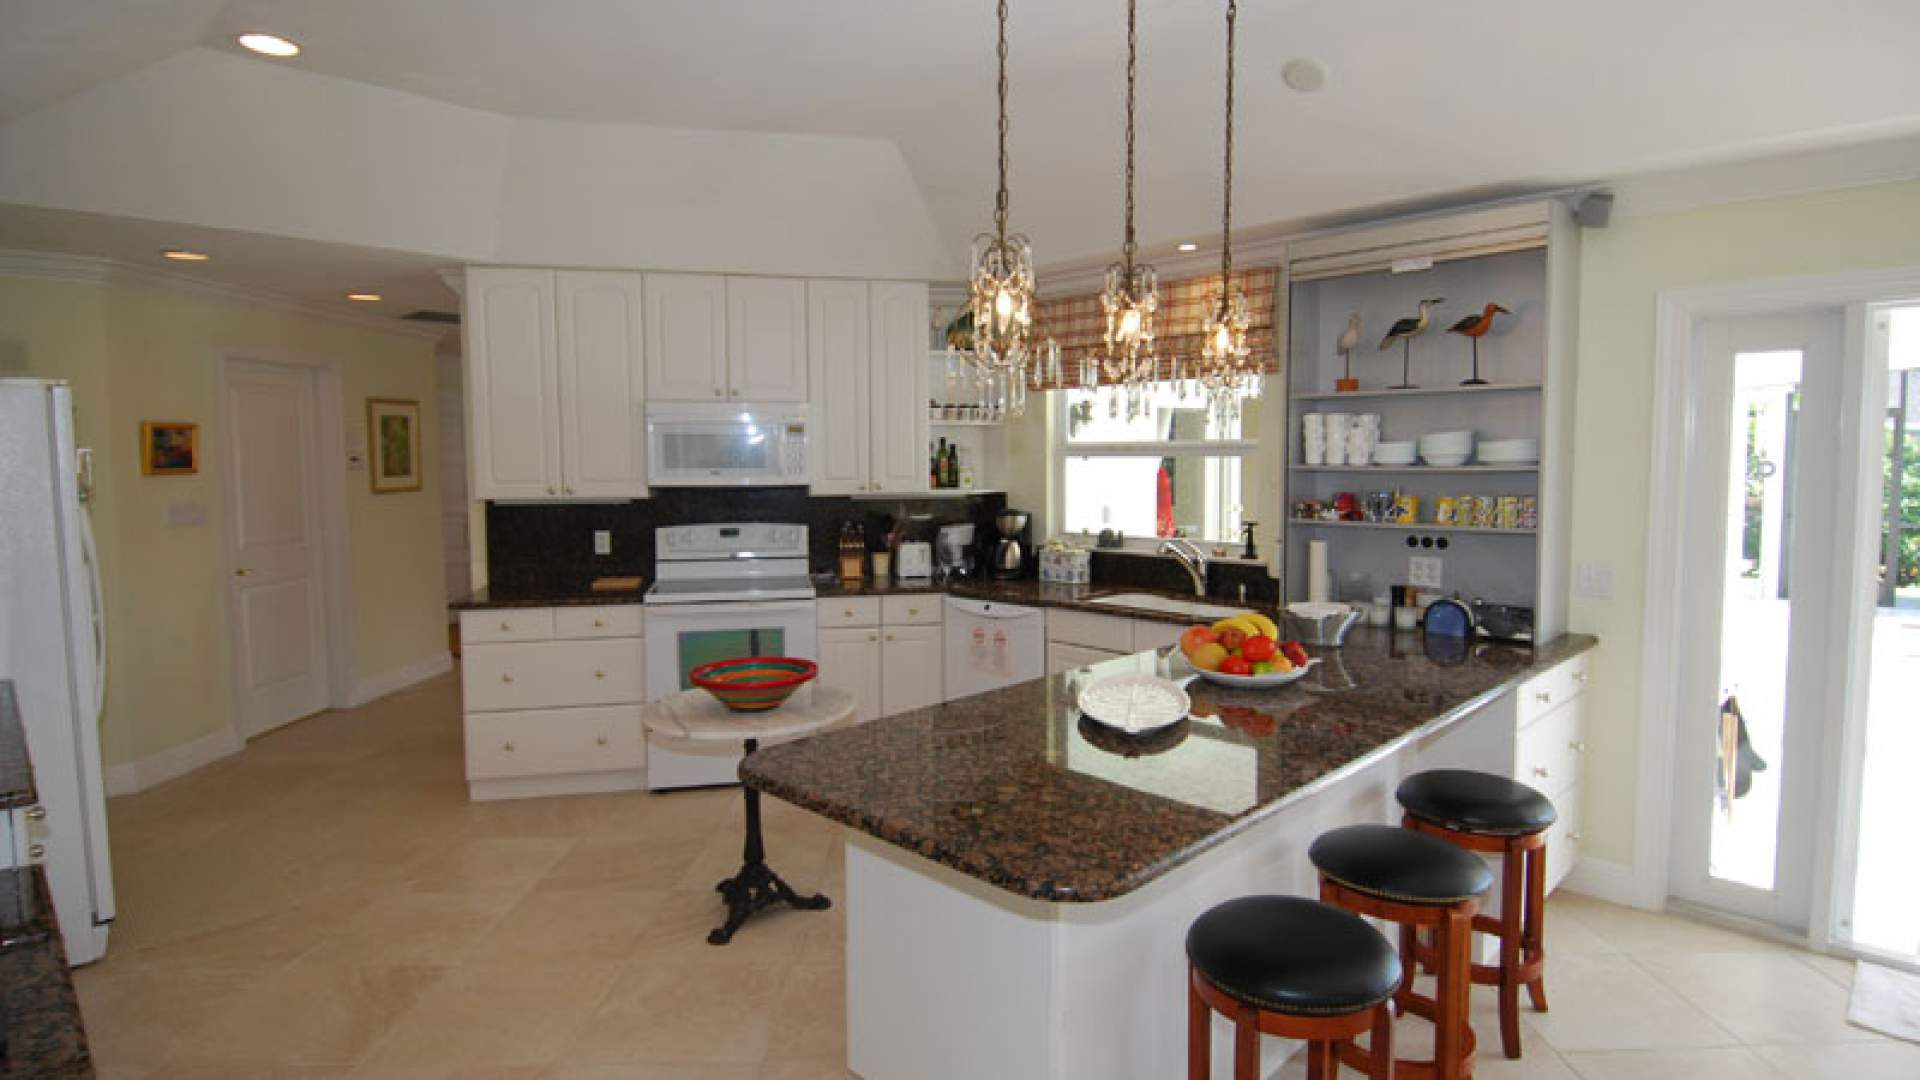 The spacious open kitchen comes fully equipped